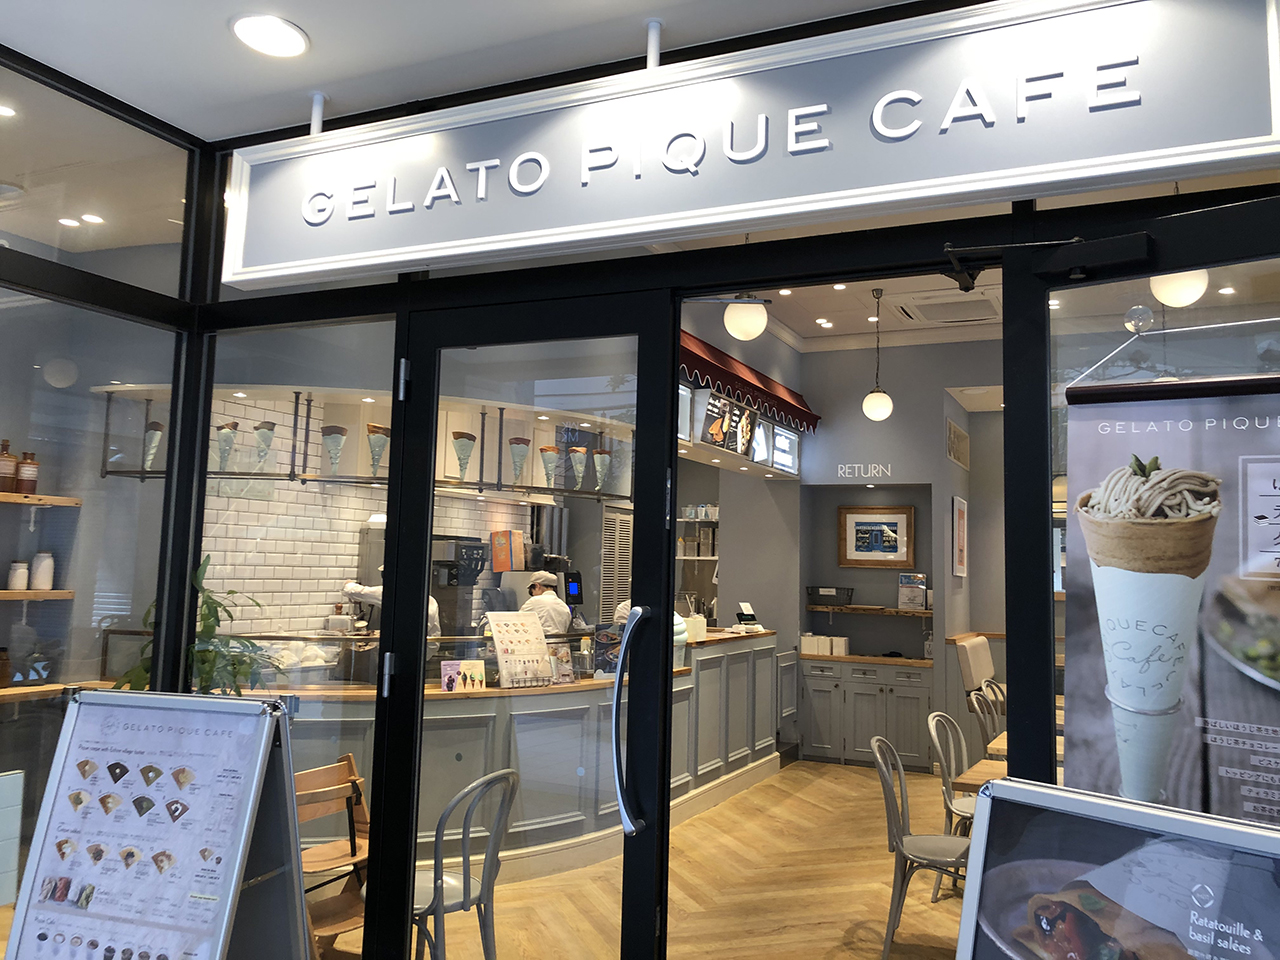 GELATO PIQUE CAFE(ジェラートピケ カフェ) 三井アウトレットパーク 幕張店の画像